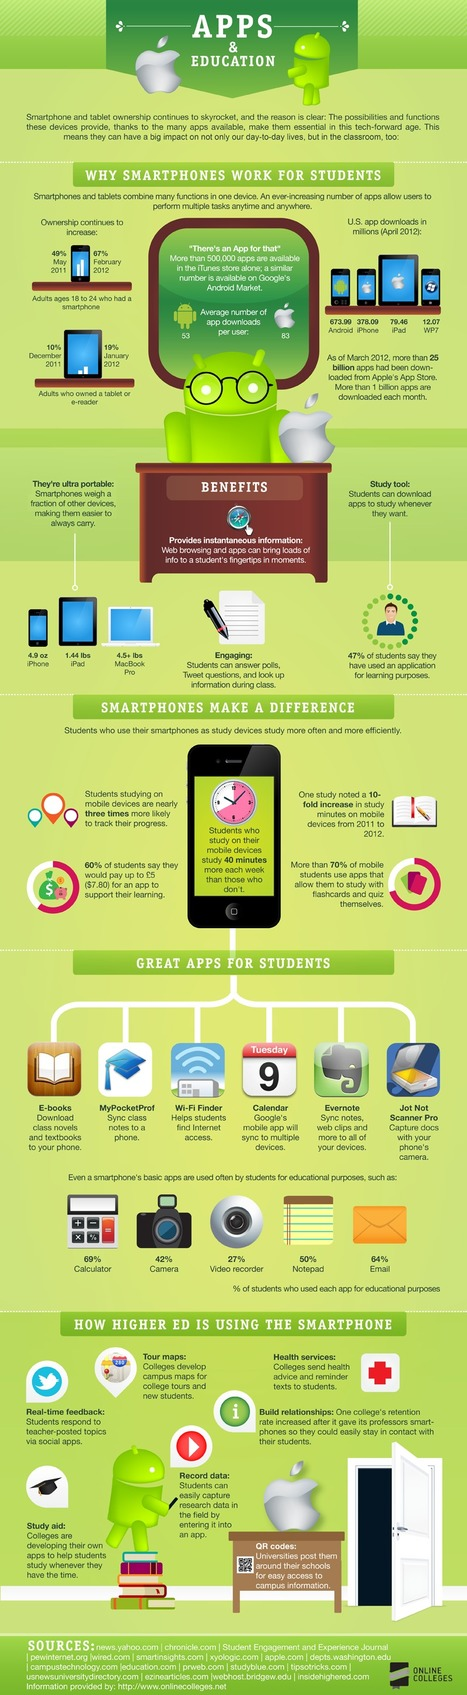 An Infographic for Mobile Learning | Educacion 2.0 | Scoop.it